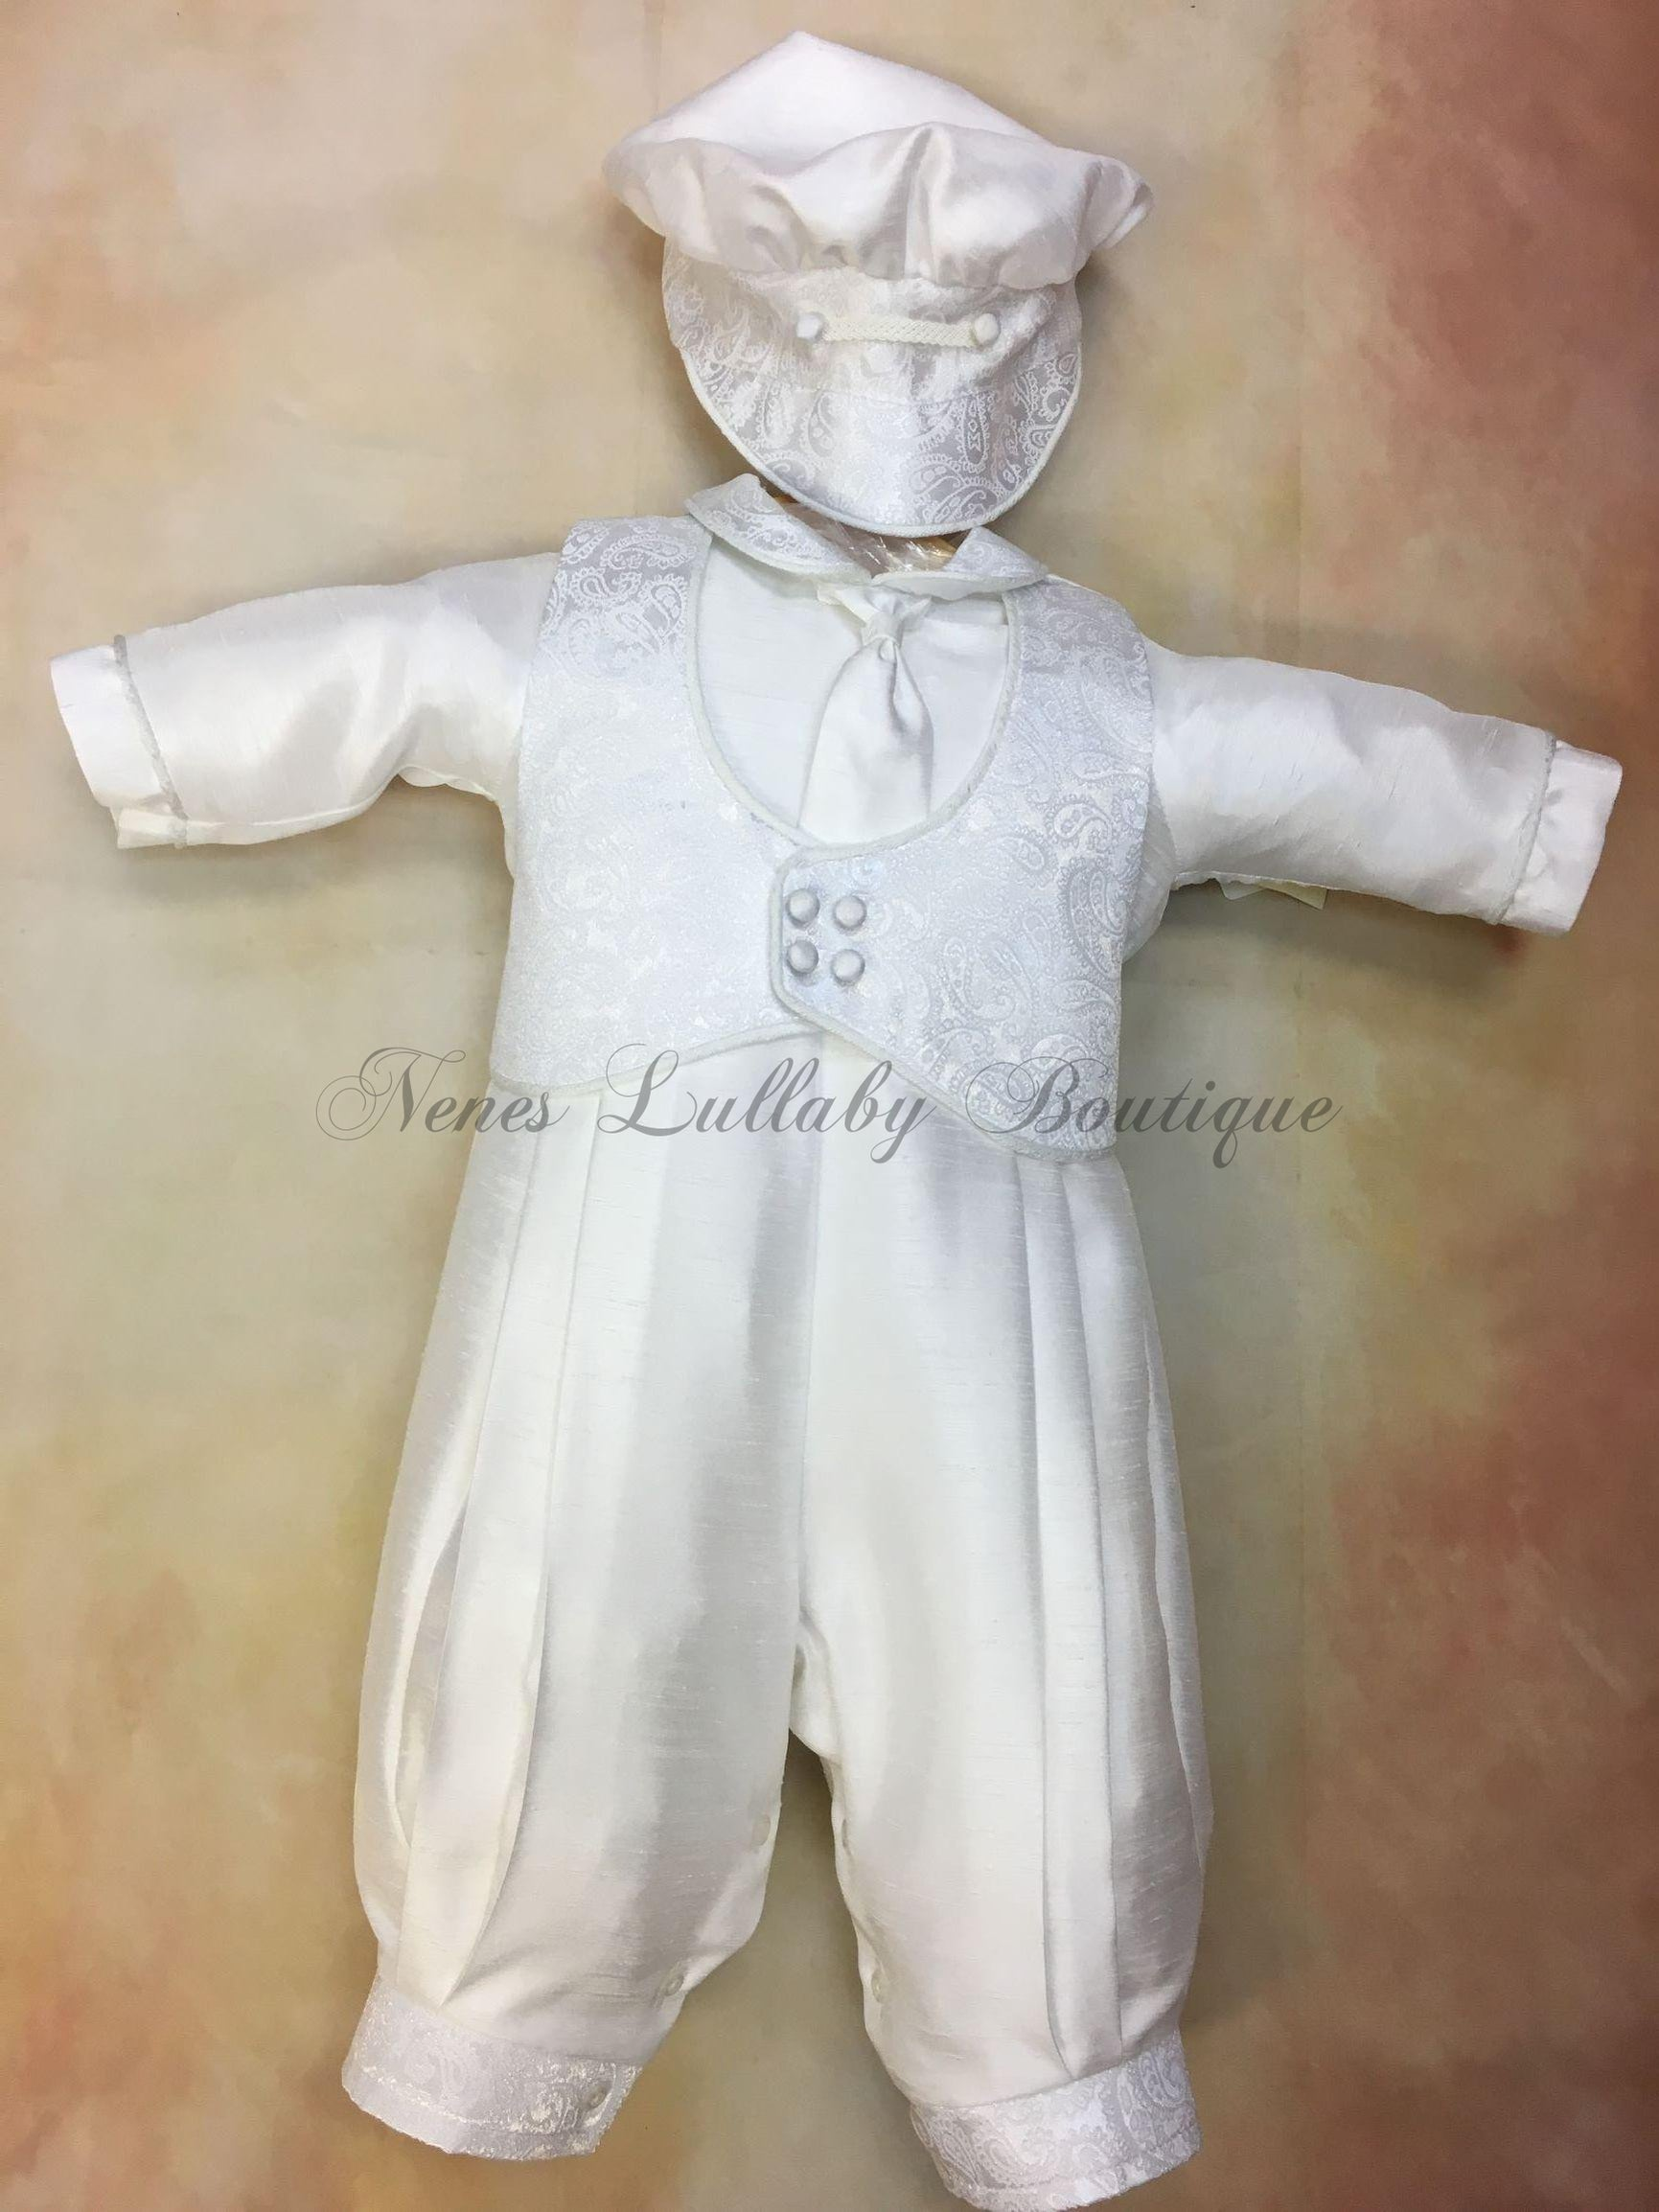 Anton by Piccolo Bacio Nenes Lullaby Boutique